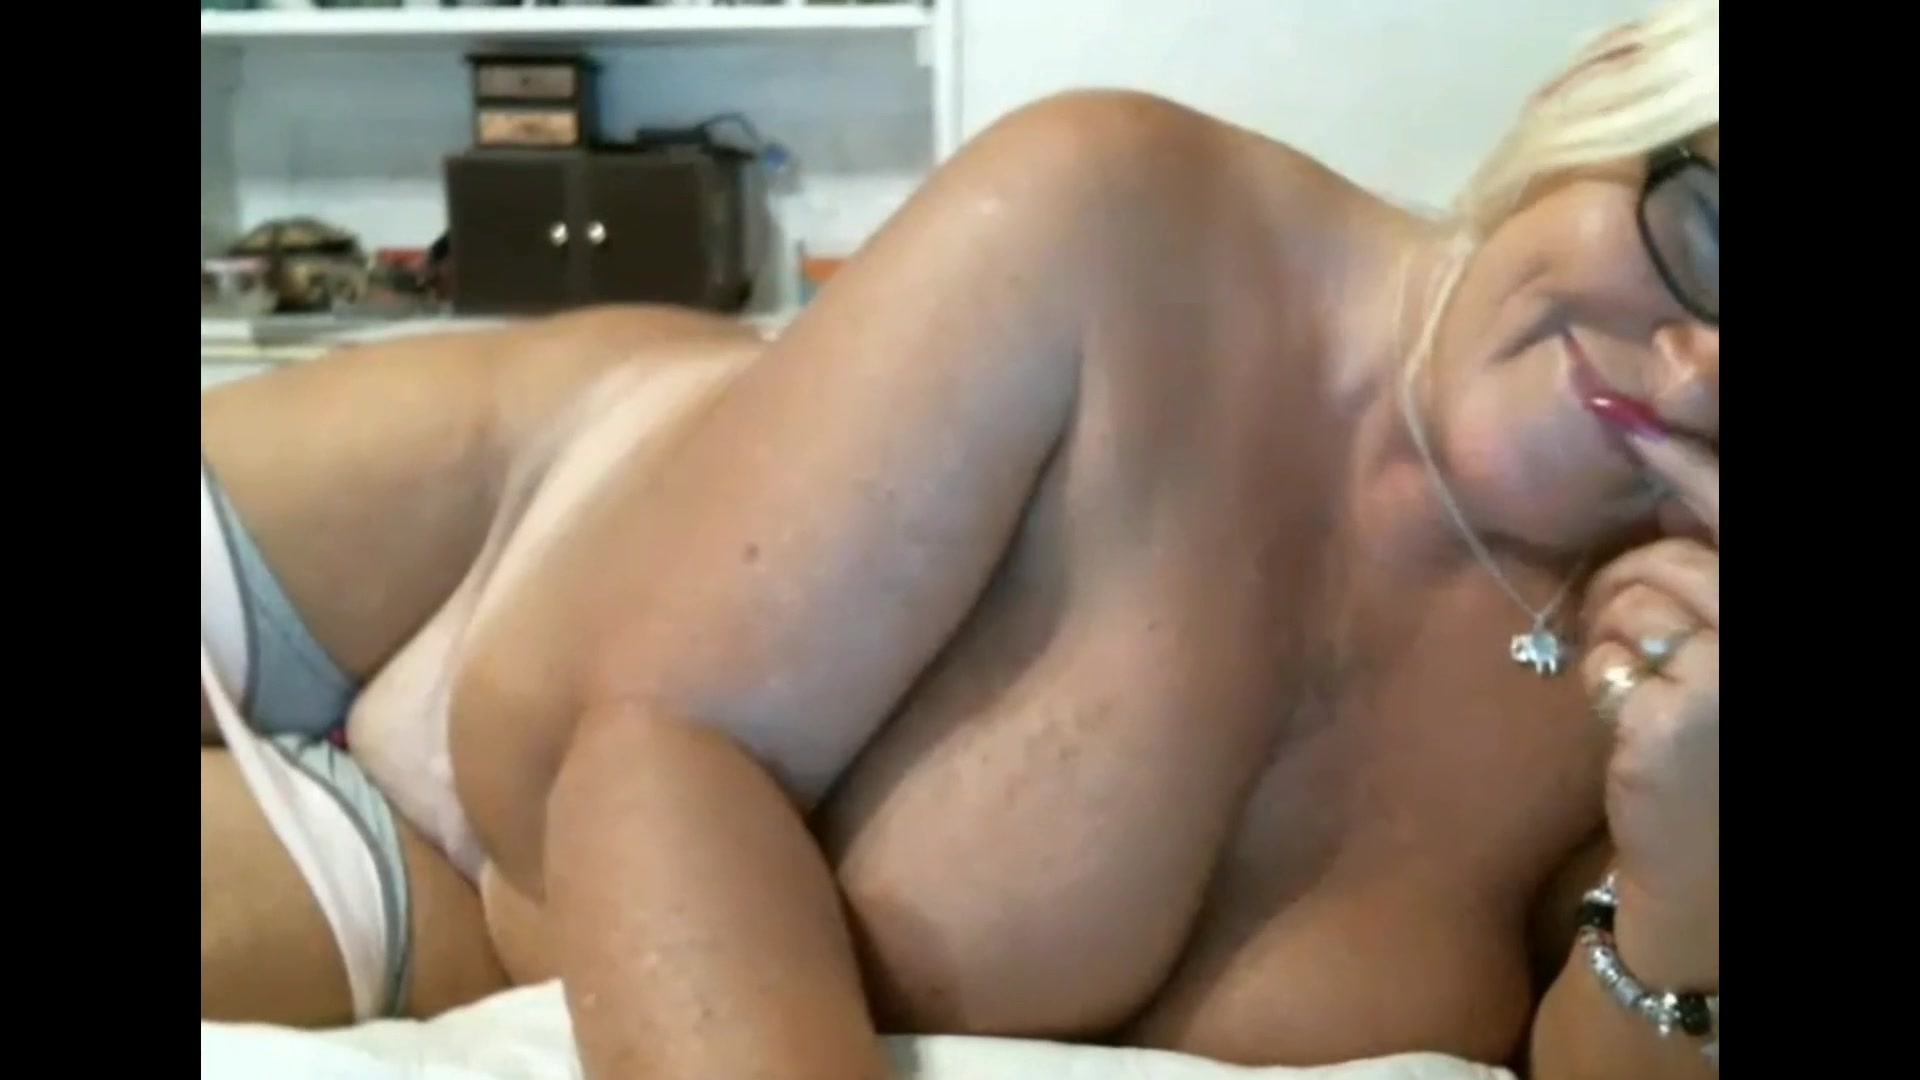 Pussy squirting stories